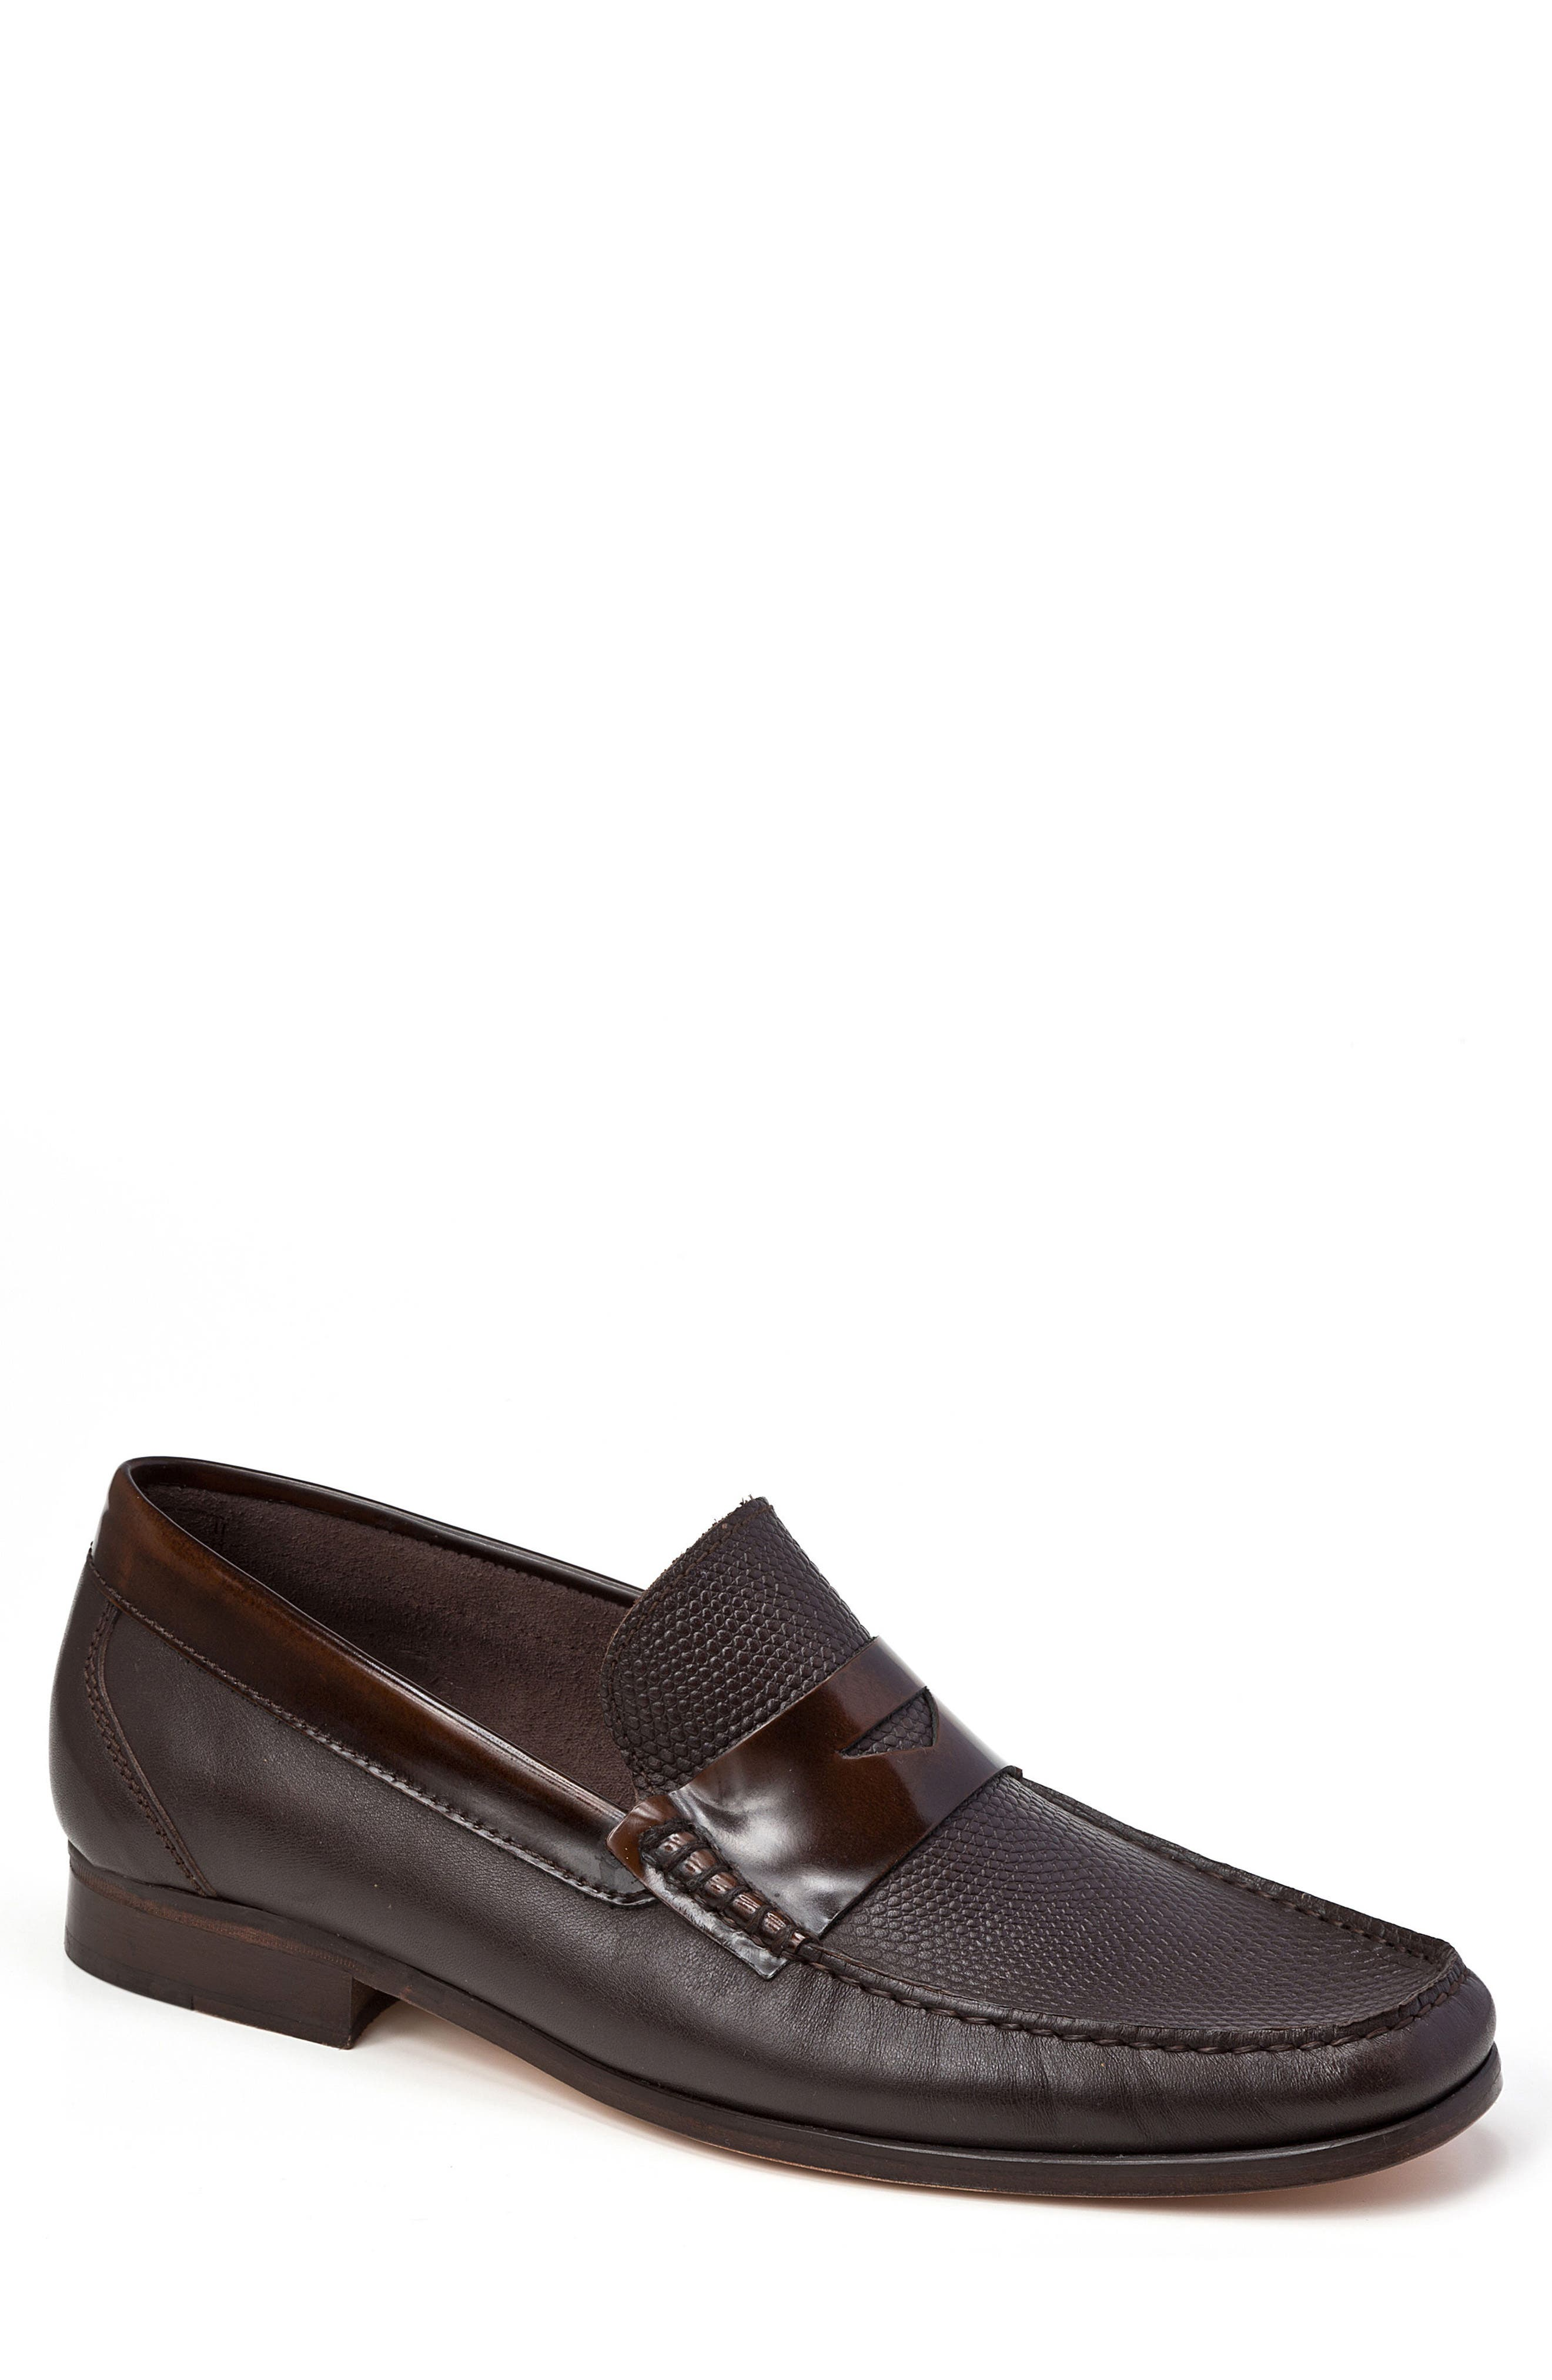 Sandro Moscoloni Bilbao Pebble Embossed Penny Loafer